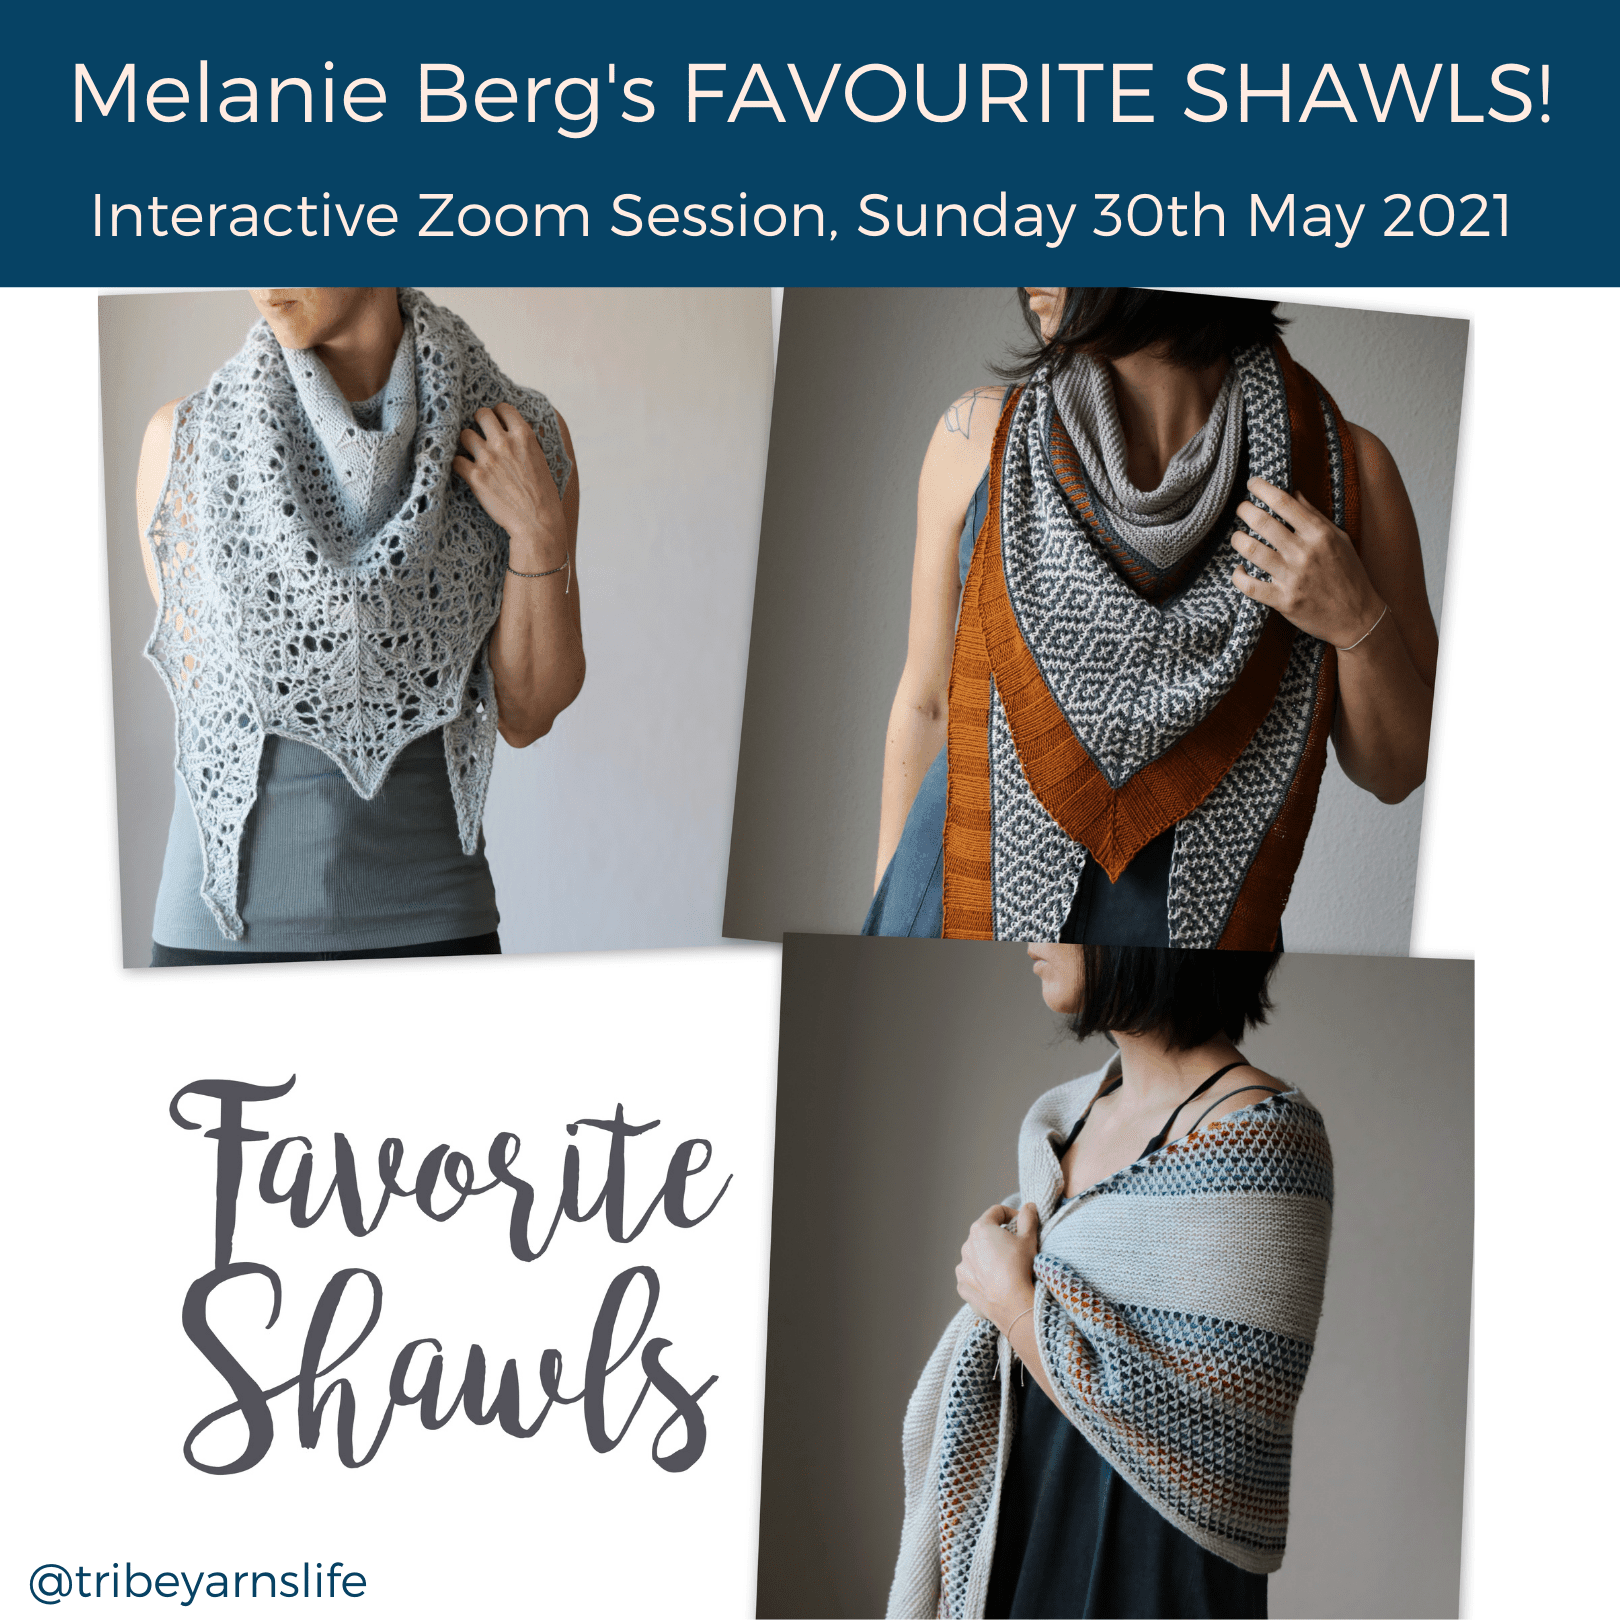 Favourite Shawls Talk with Melanie Berg @mairlynd tribeyarns Event